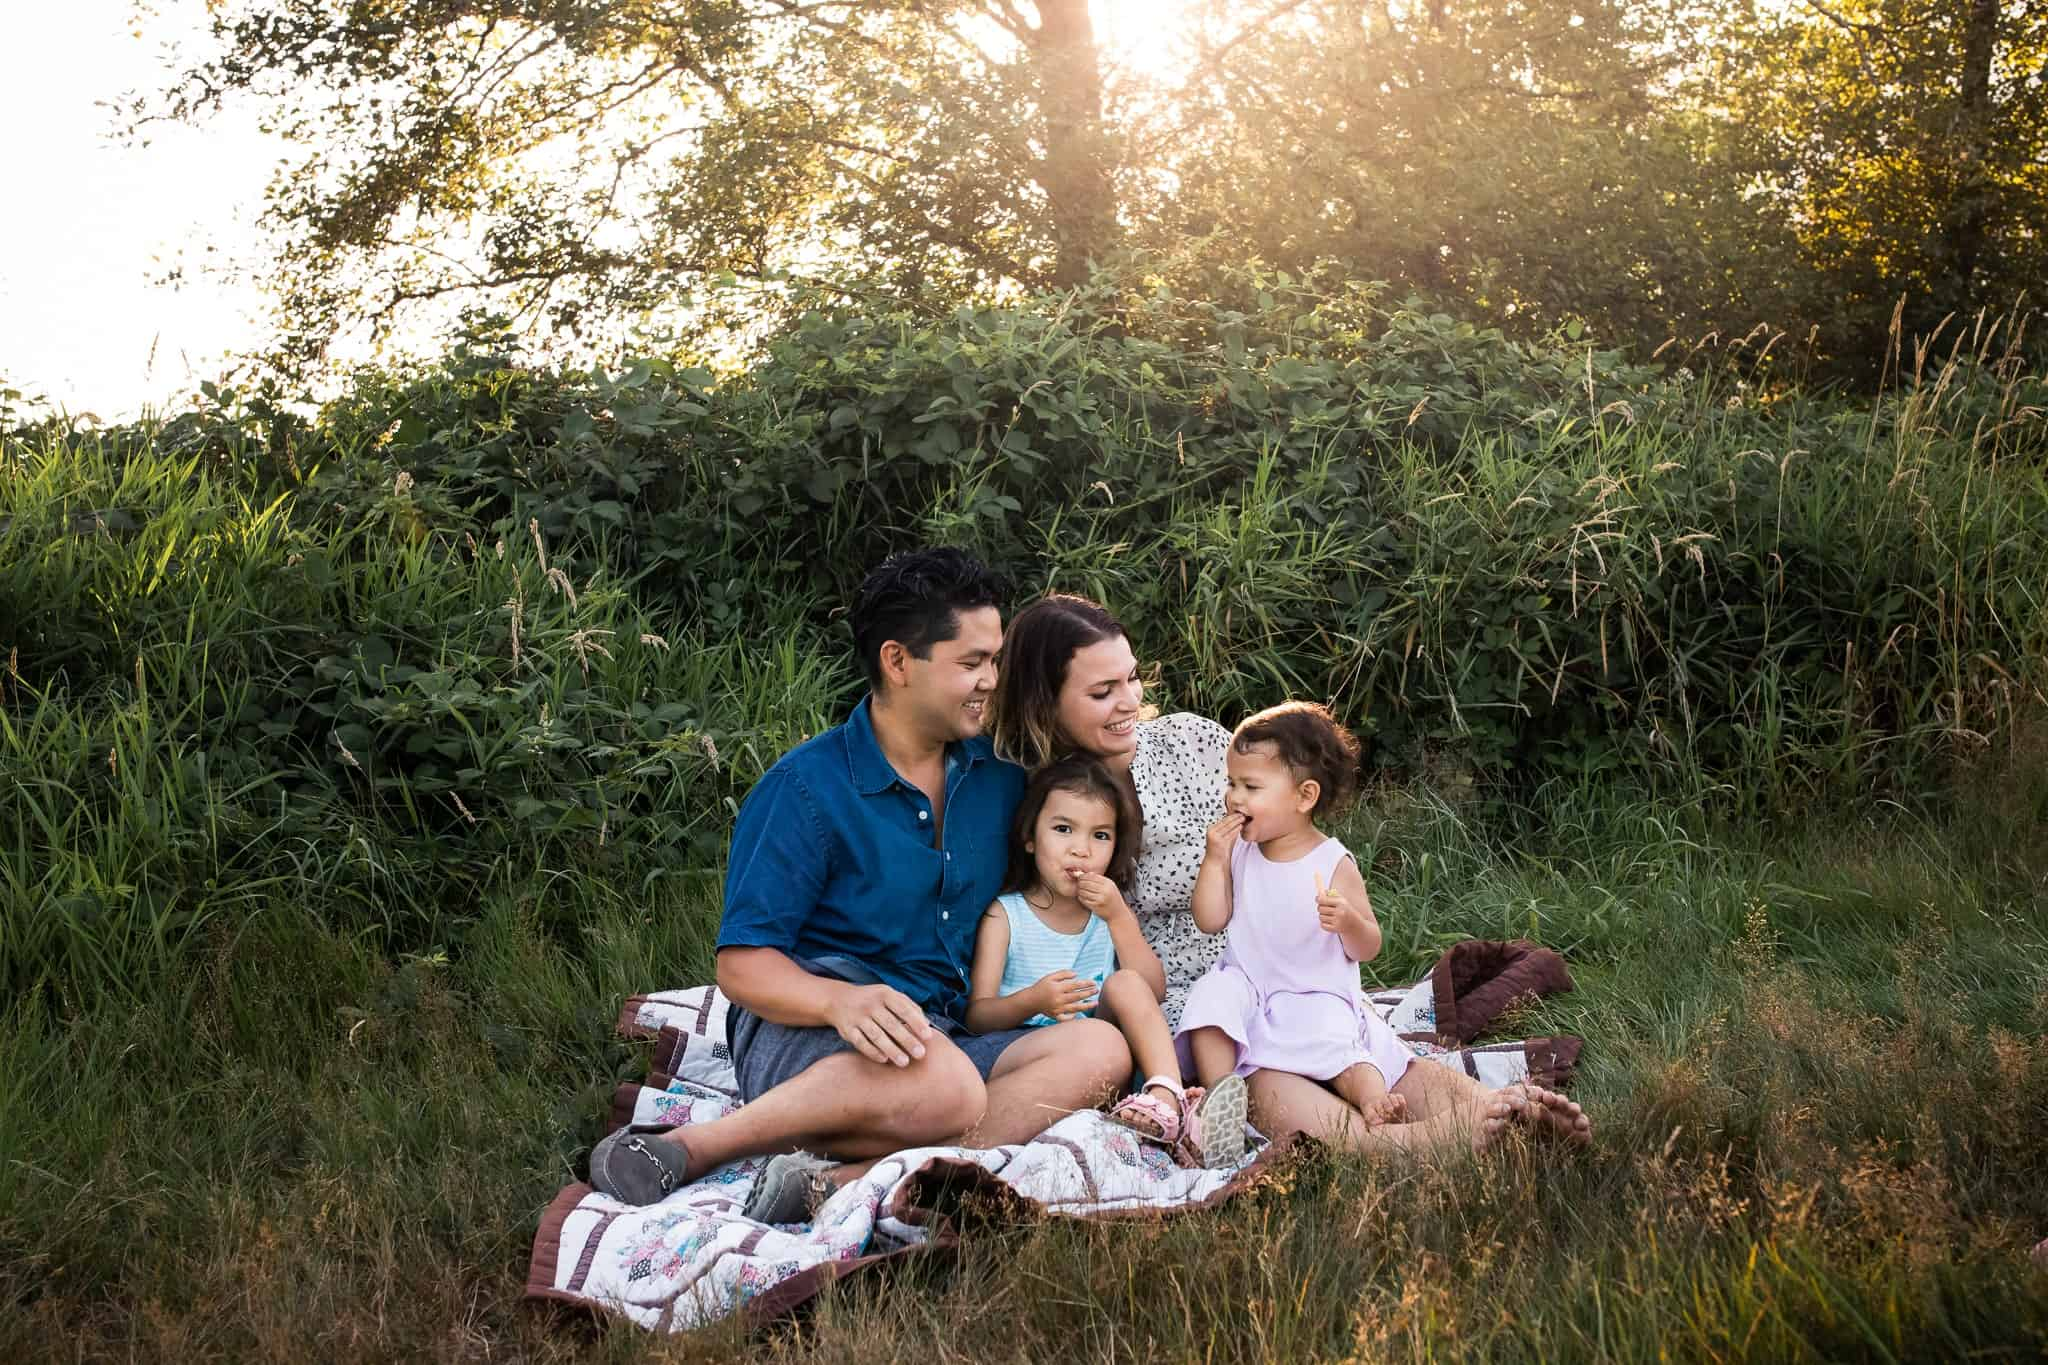 family sitting on blanket in sunset and field eating snacks and snuggling